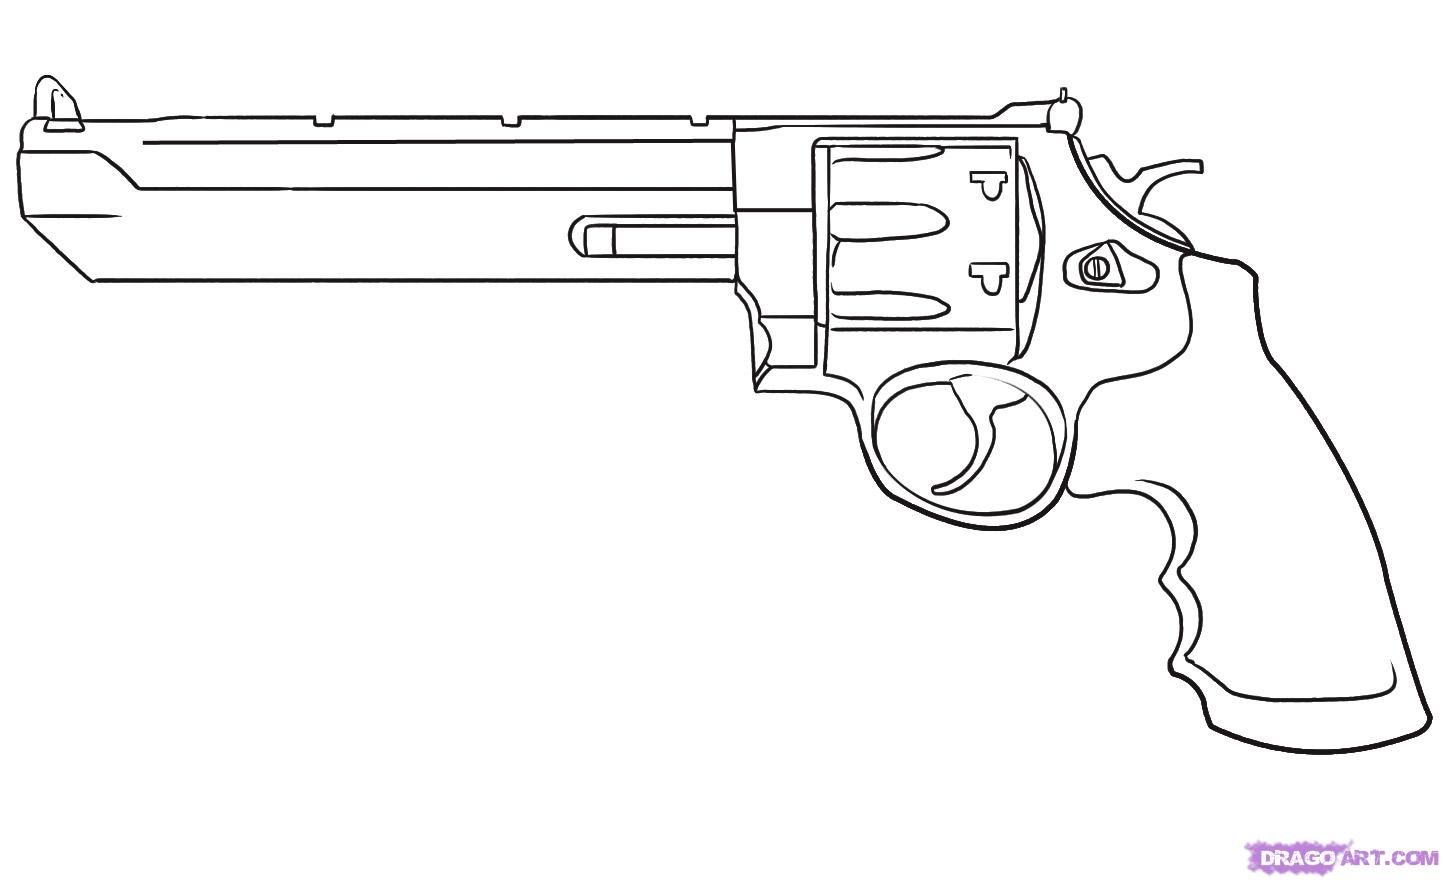 Drawing Lines Using Python : Drawing of colt revolver gun that i could use for